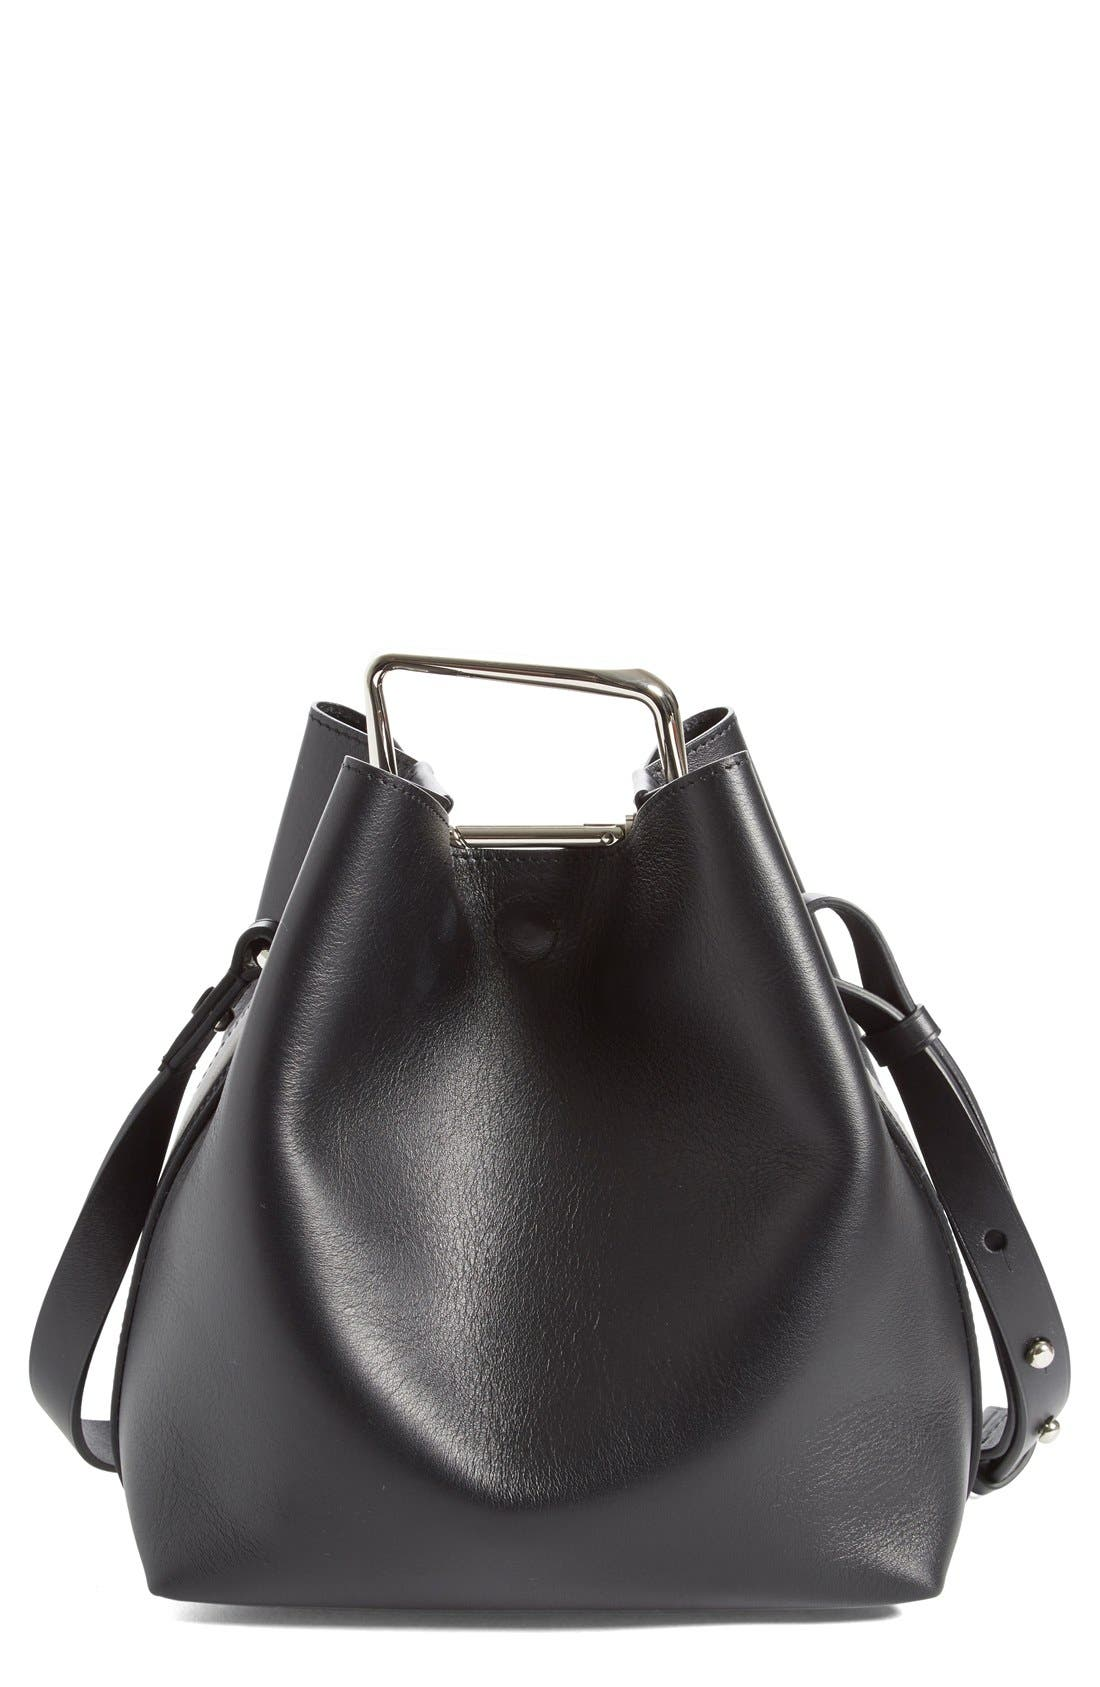 'Mini Quill' Leather Bucket Bag,                         Main,                         color, Black